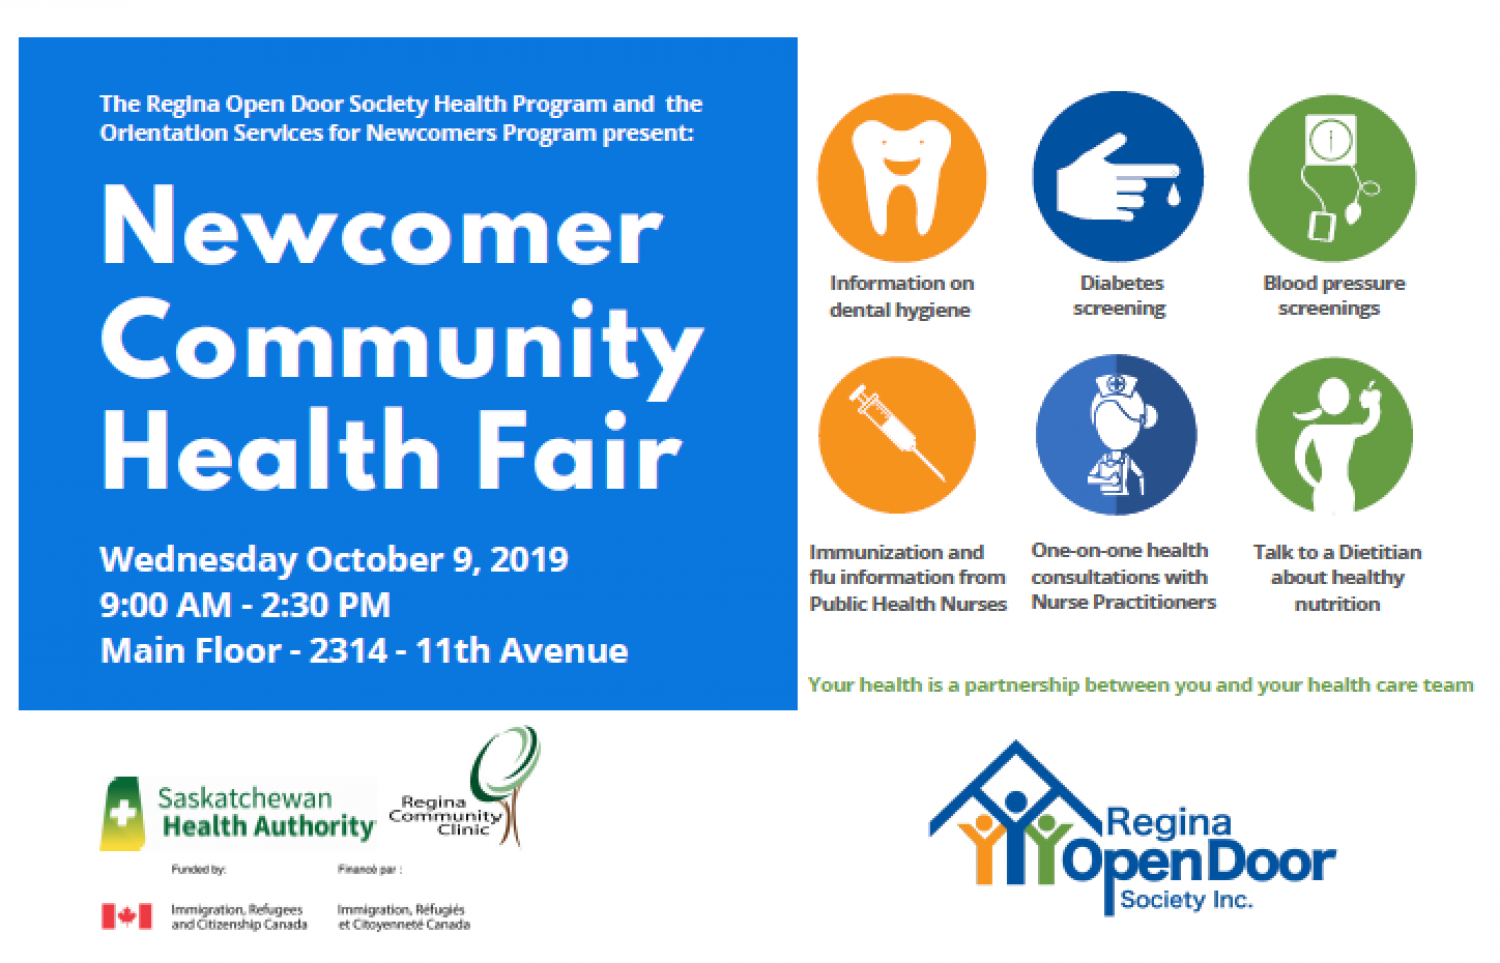 Health Fair for Newcomers - Oct. 9th